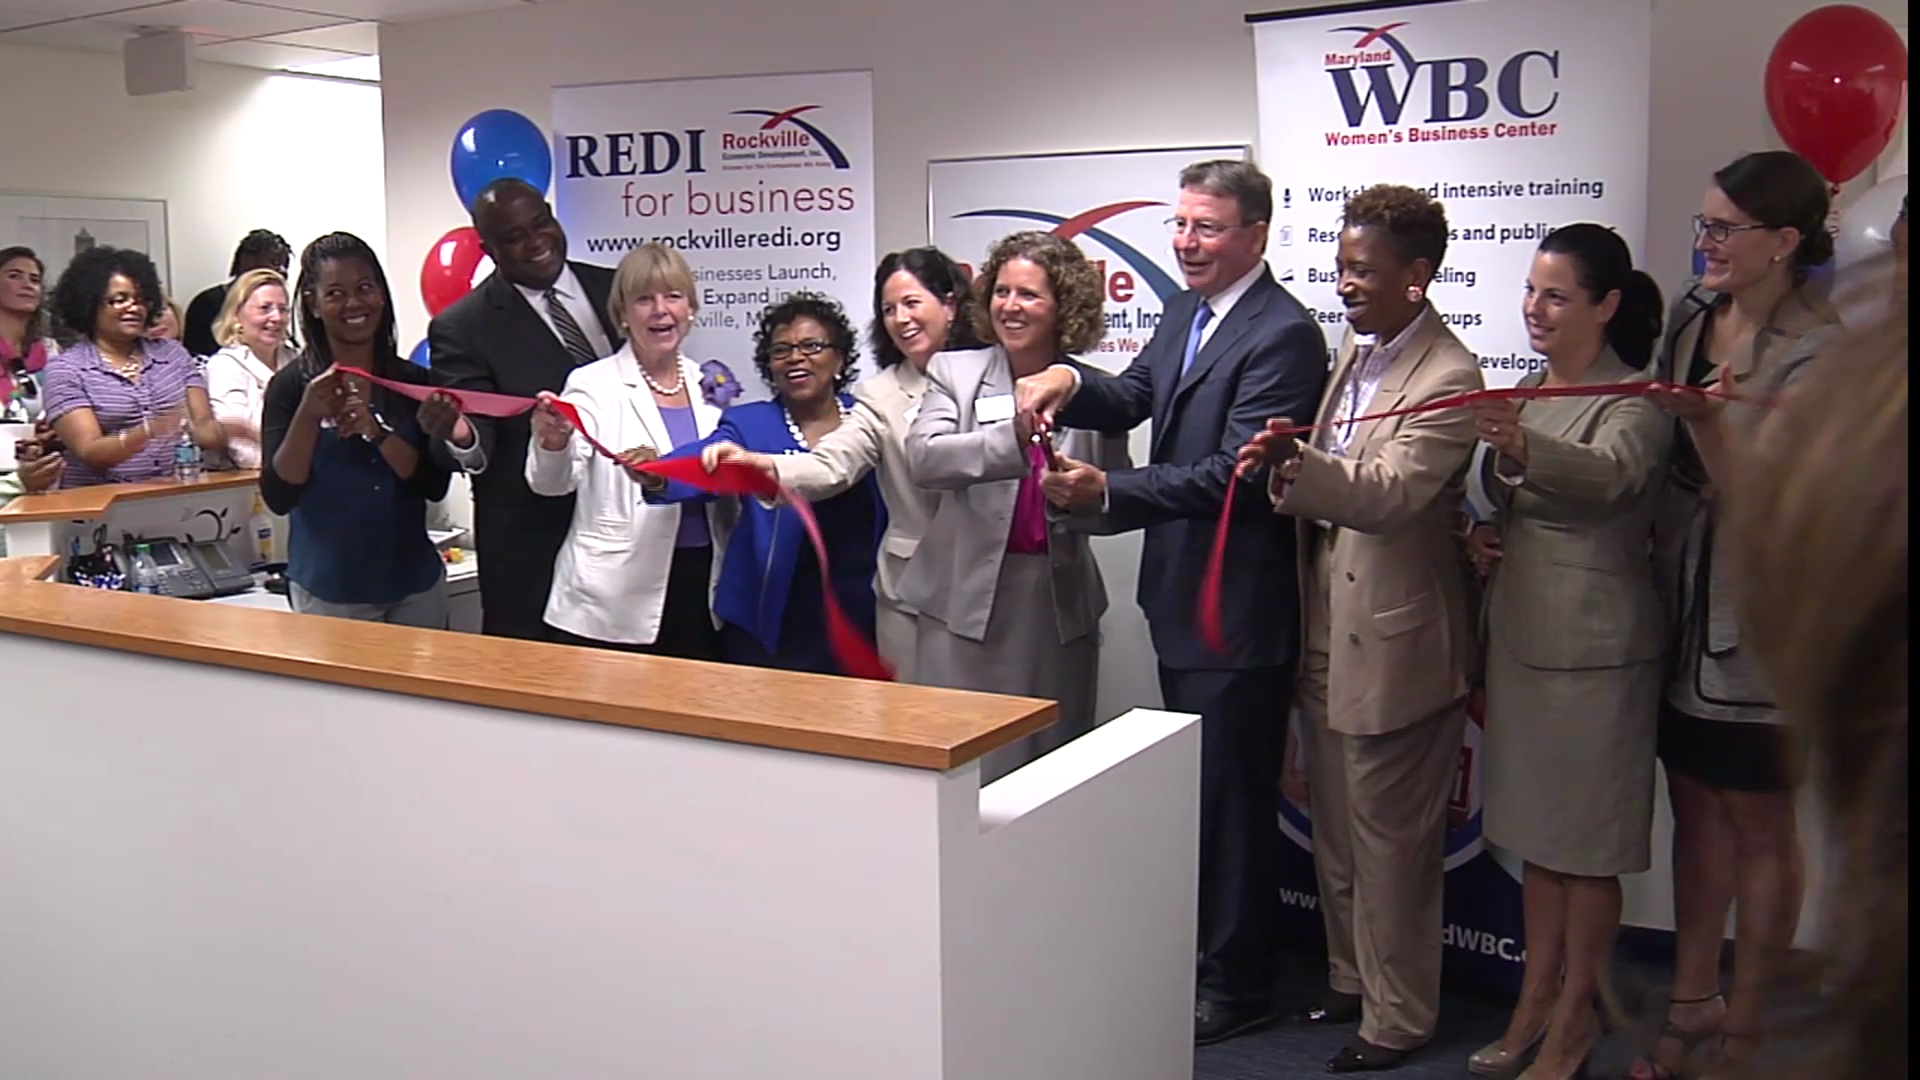 photo of ribbon cutting at new offices for Rockville Economic Development Center and Maryland Women's Business Center